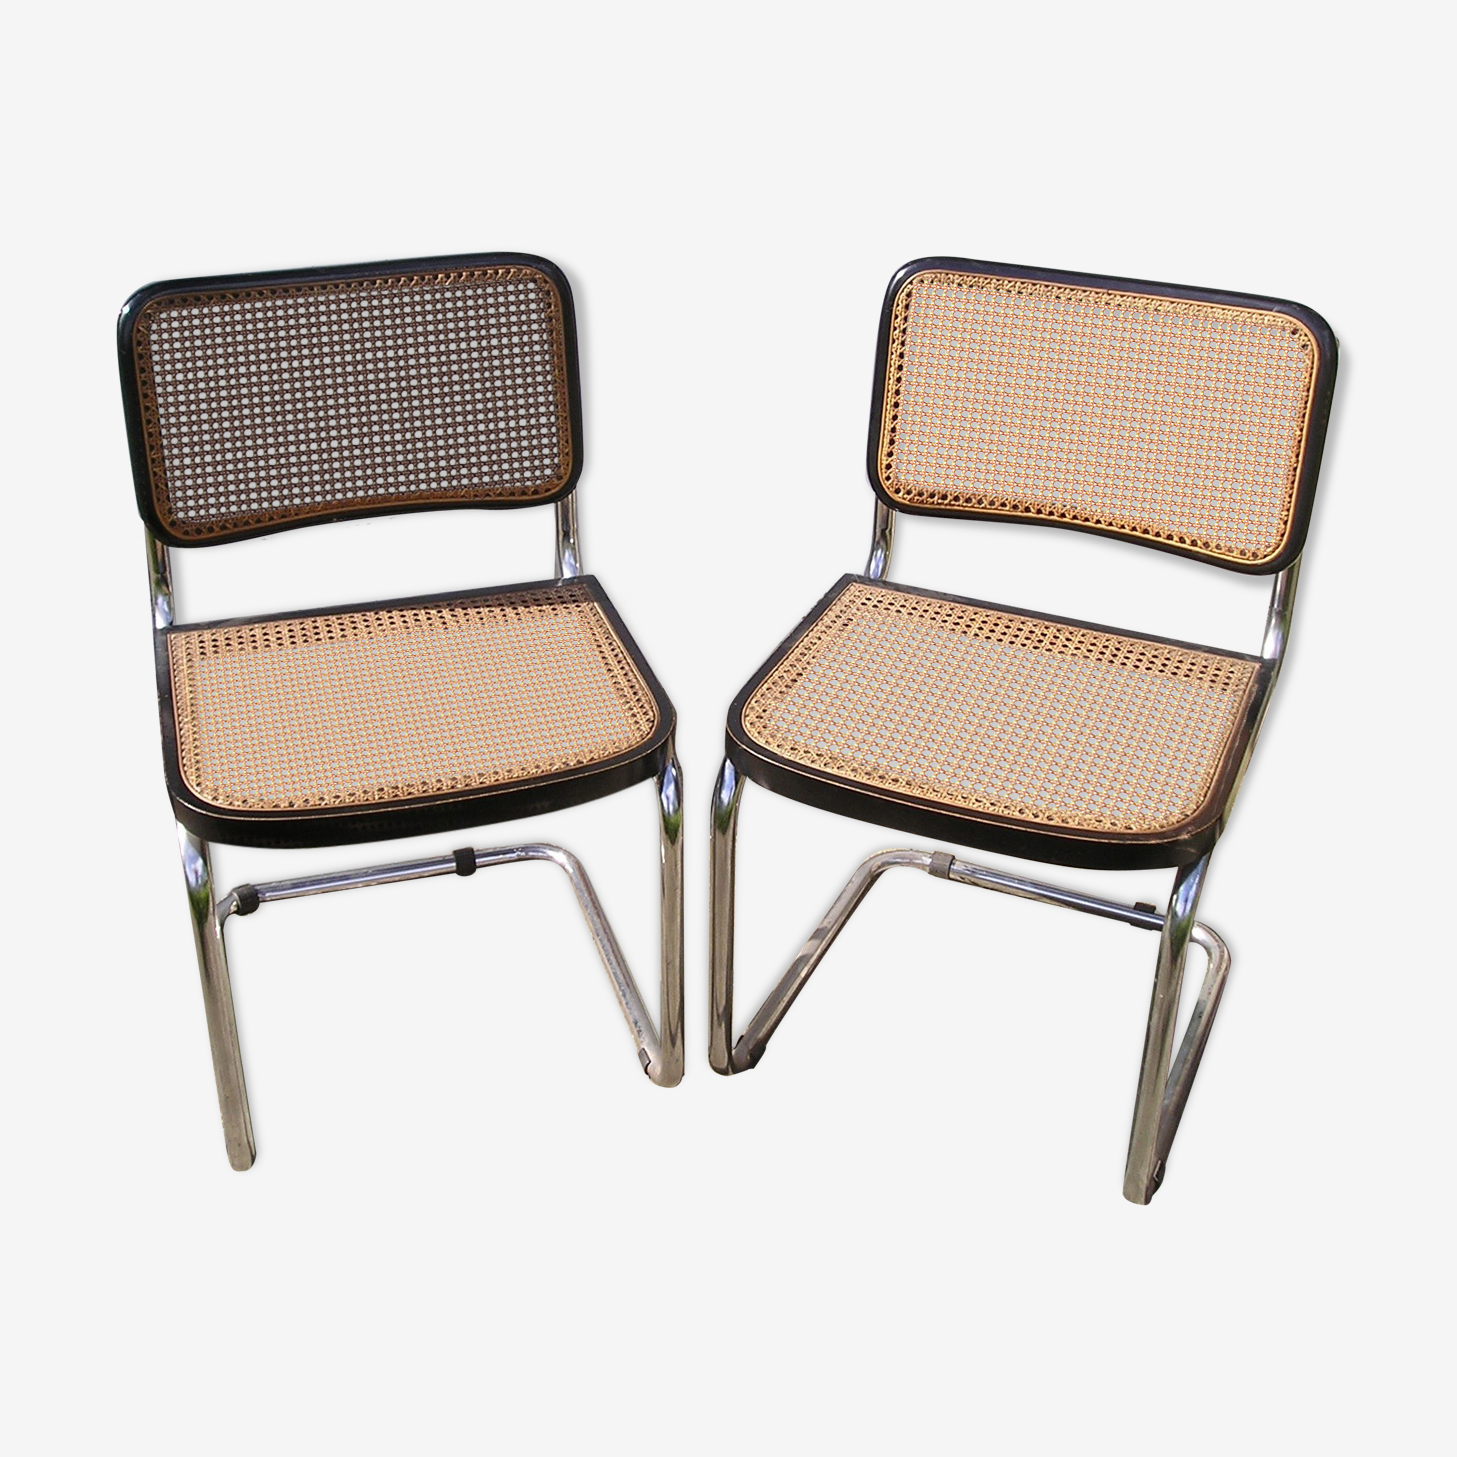 Pair of chairs B32 of Marcel Breuer